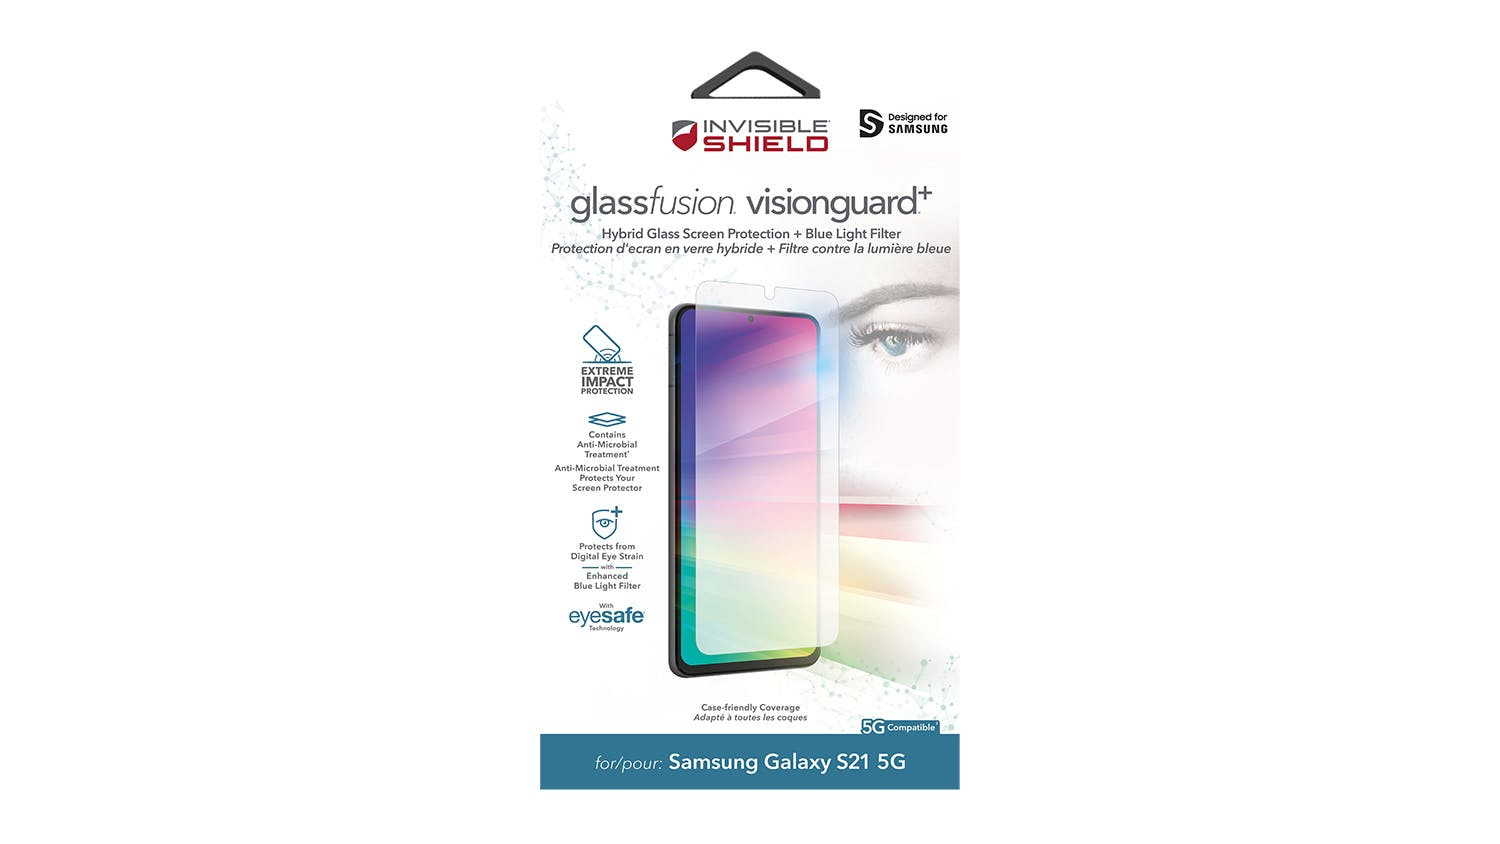 Zagg InvisibleShield GlassFusion VisionGuard+ Screen Protector for Samsung Galaxy S21 5G